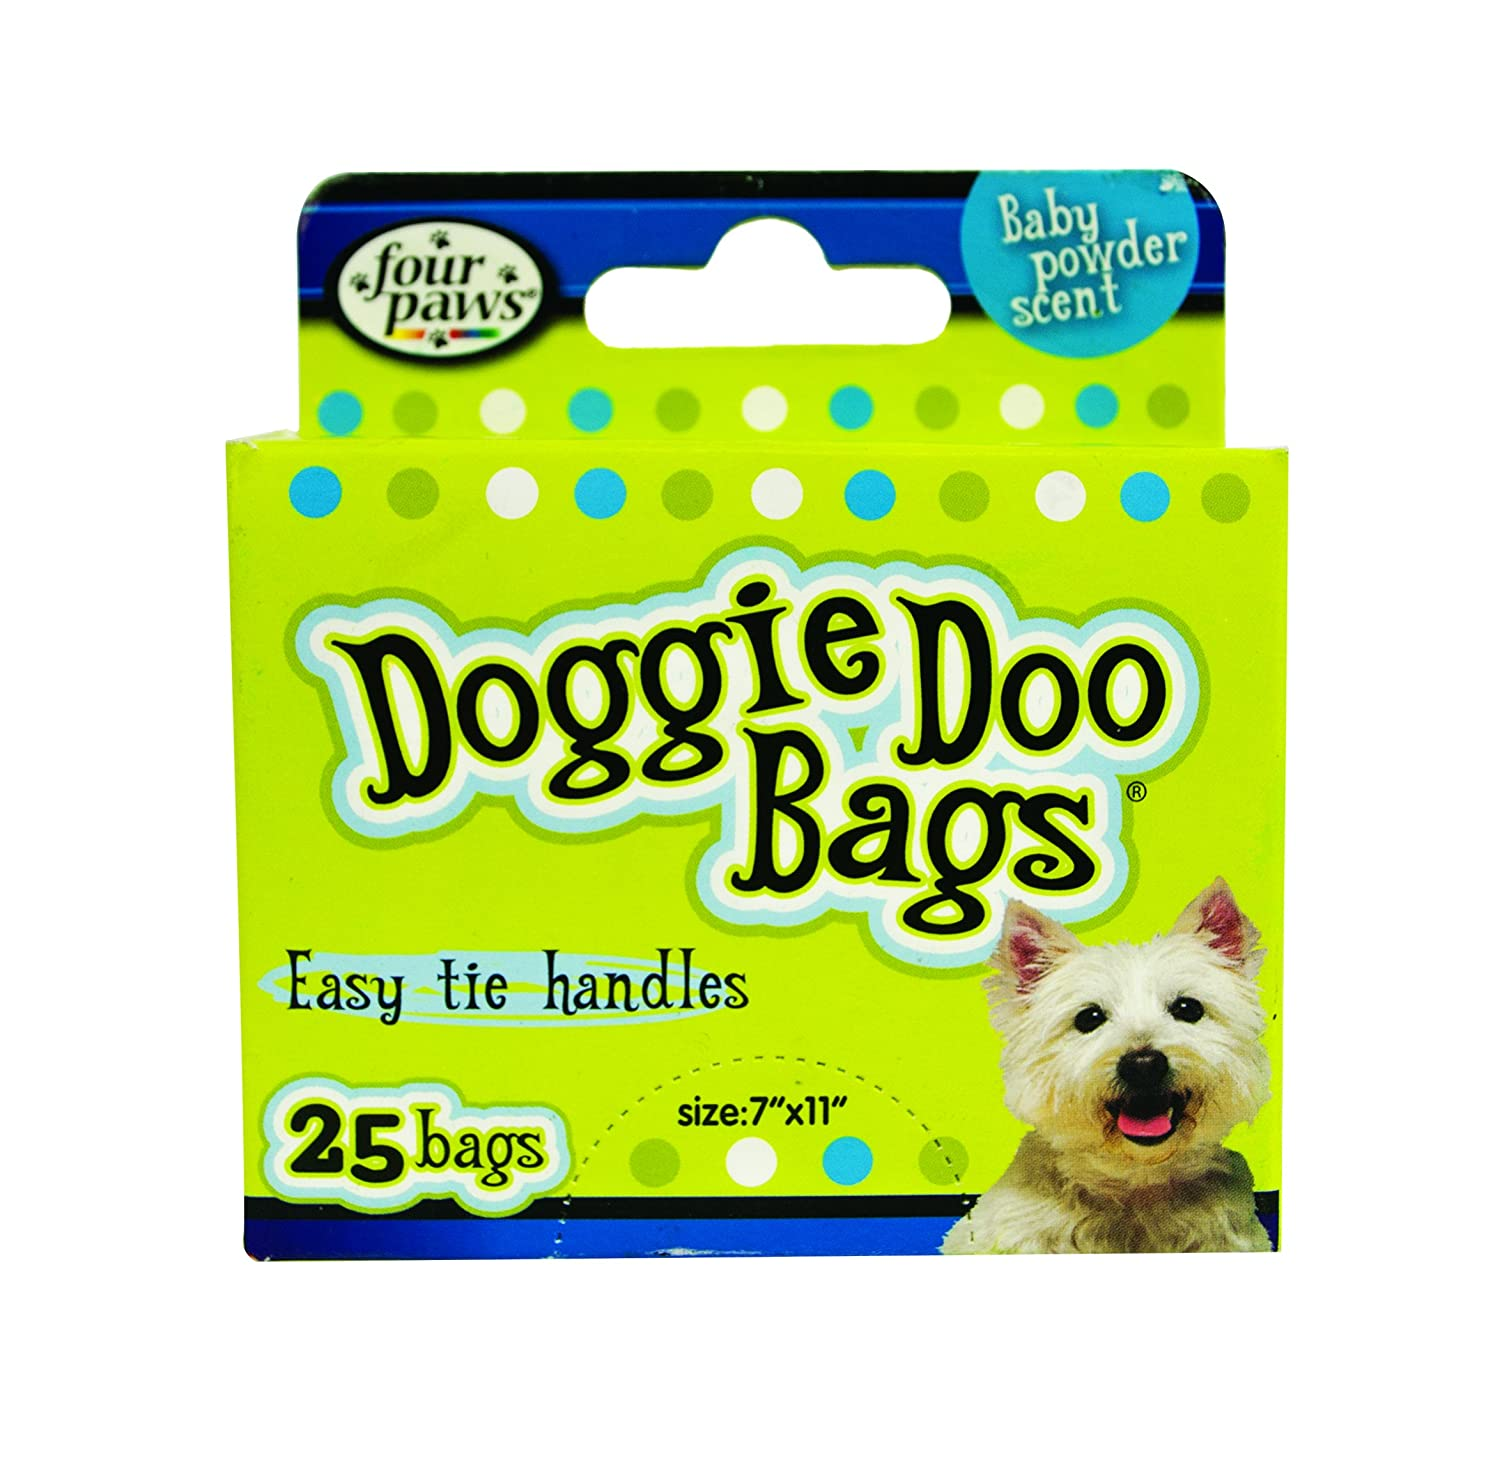 Four Paws Doggie Doo Bags 25 count   Baby Powder Scent   Easy Tie Handles